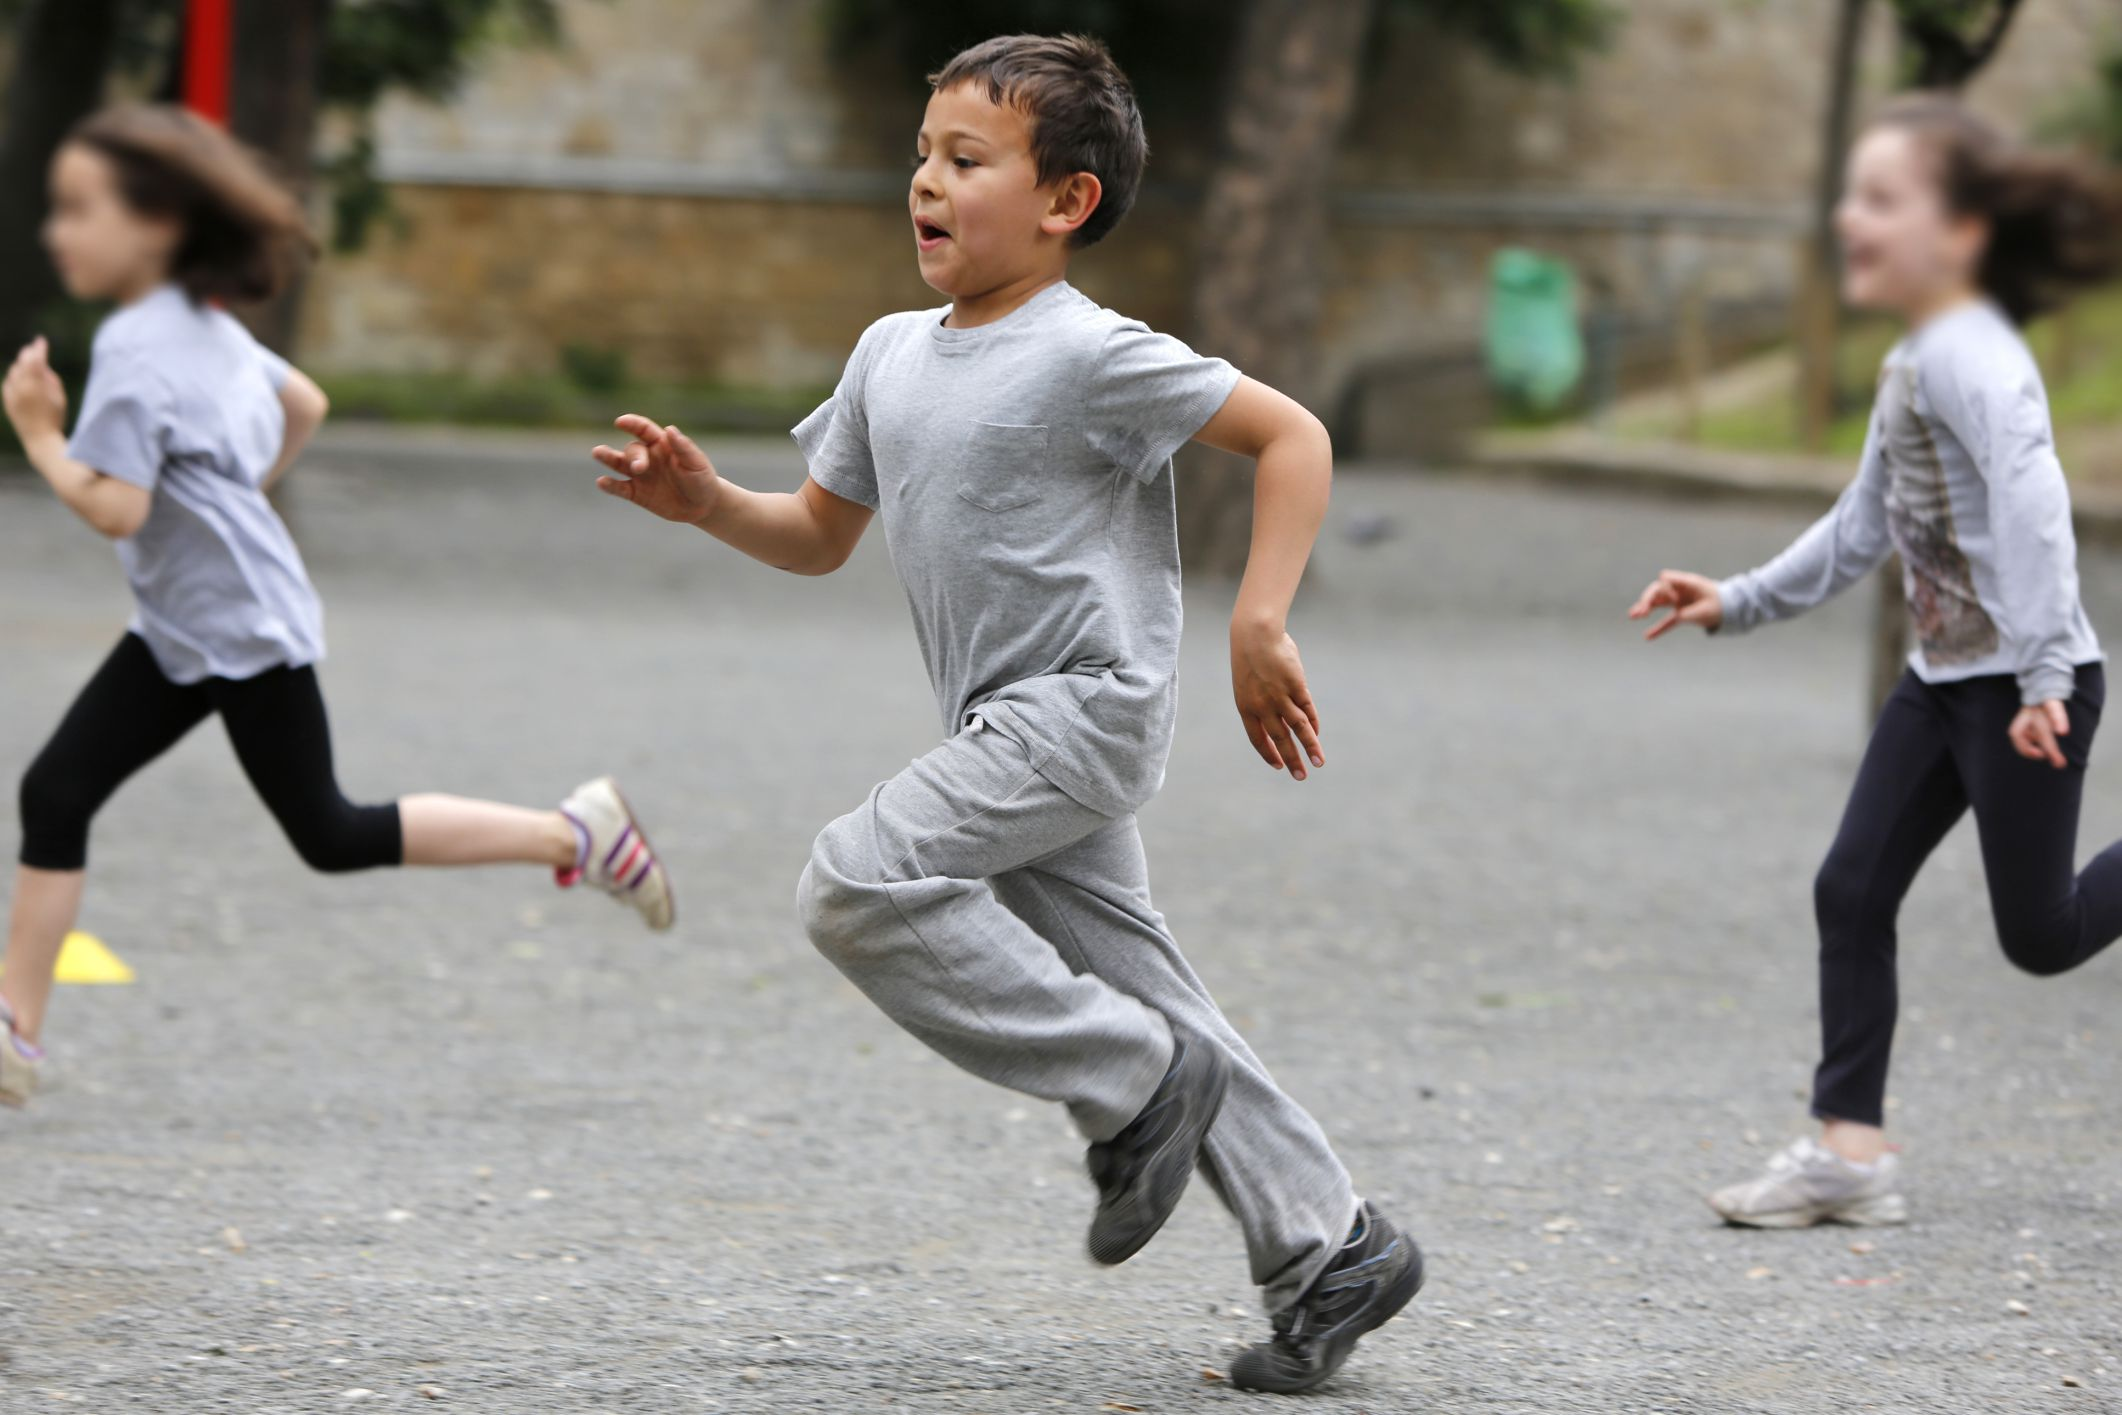 How To Start An After School Running Club For Kids